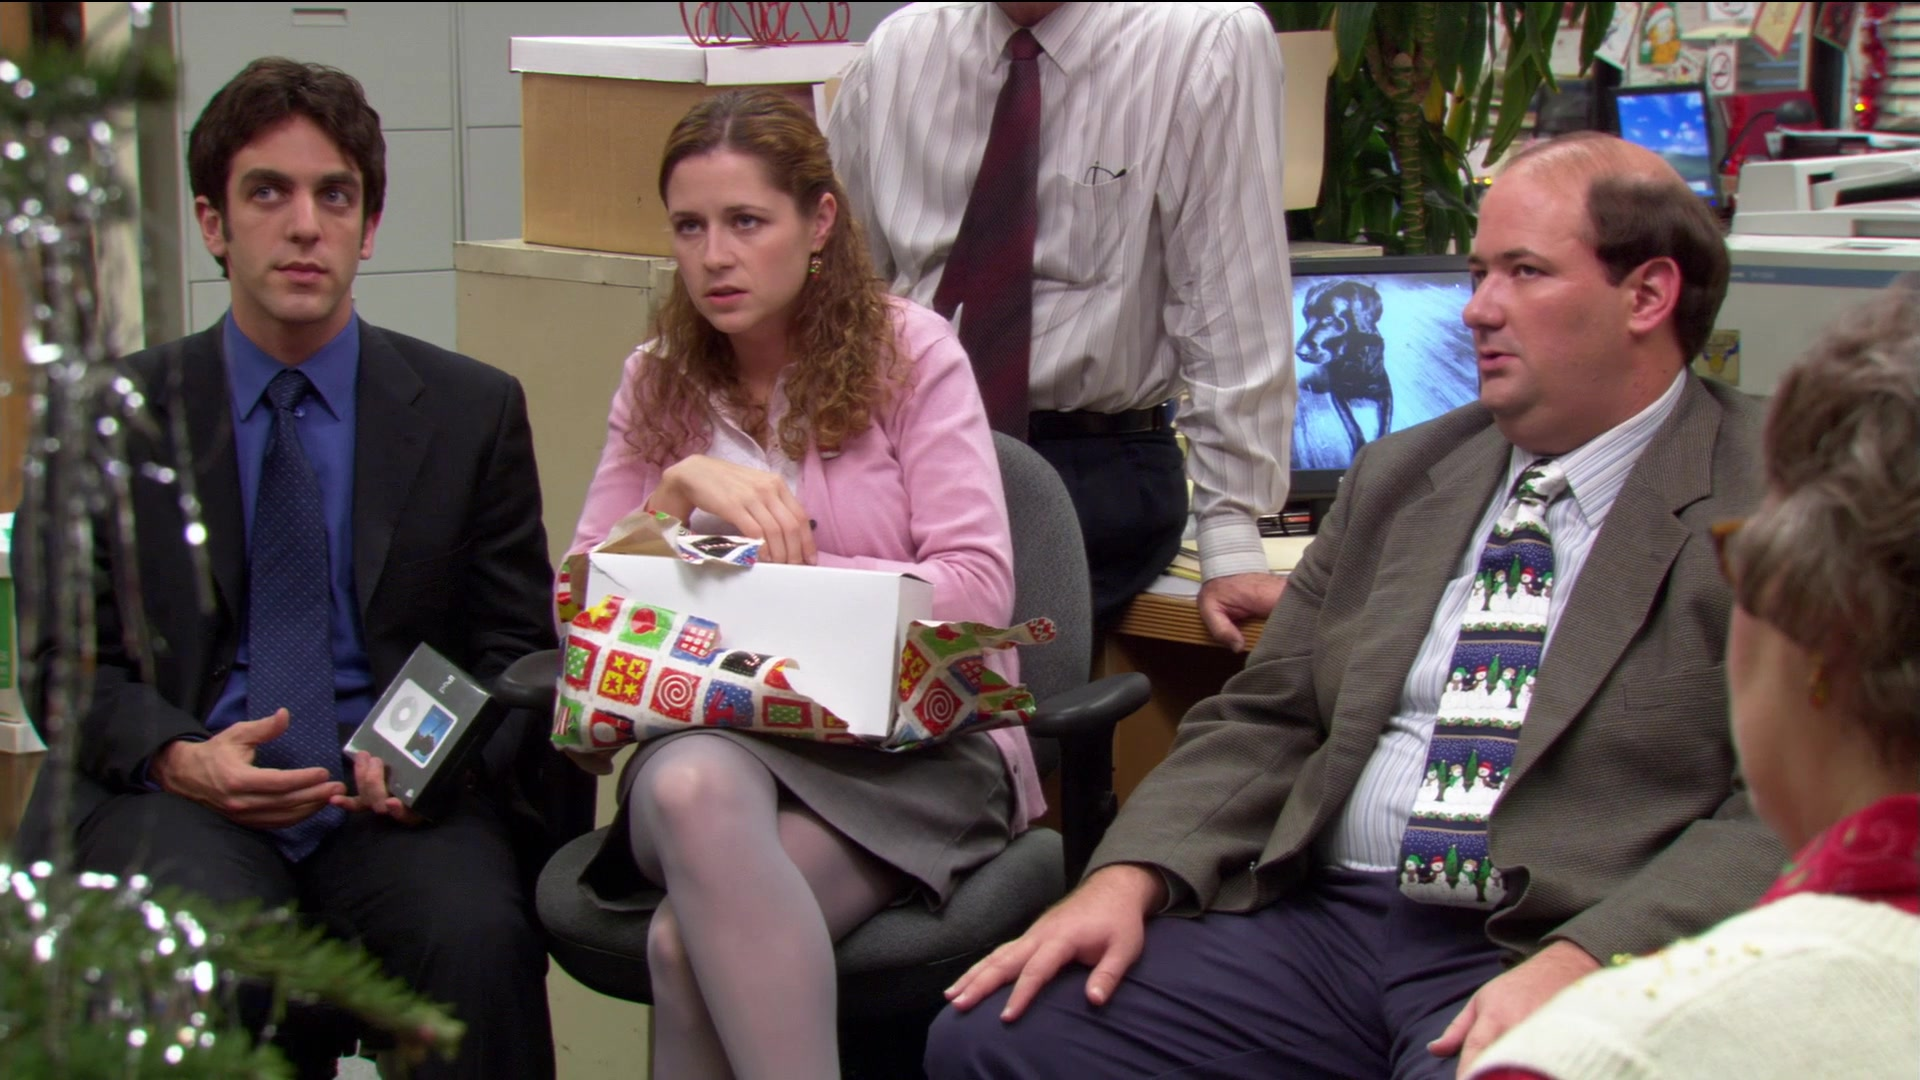 Apple iPod Portable Media Player in The Office – Season 2, Episode